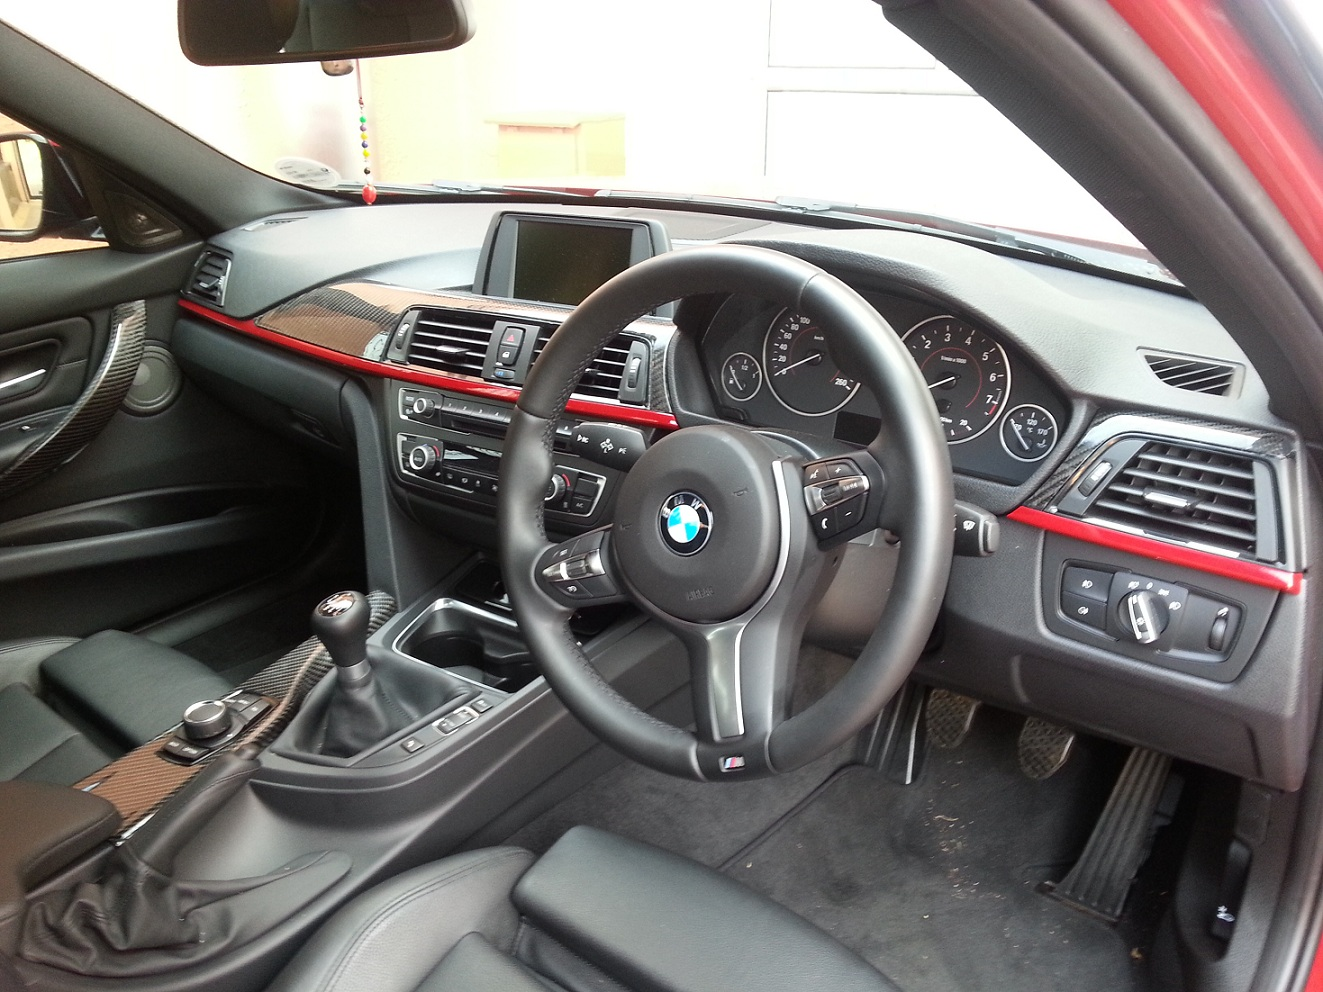 2013 bmw 320i interior male models picture - Attached Images